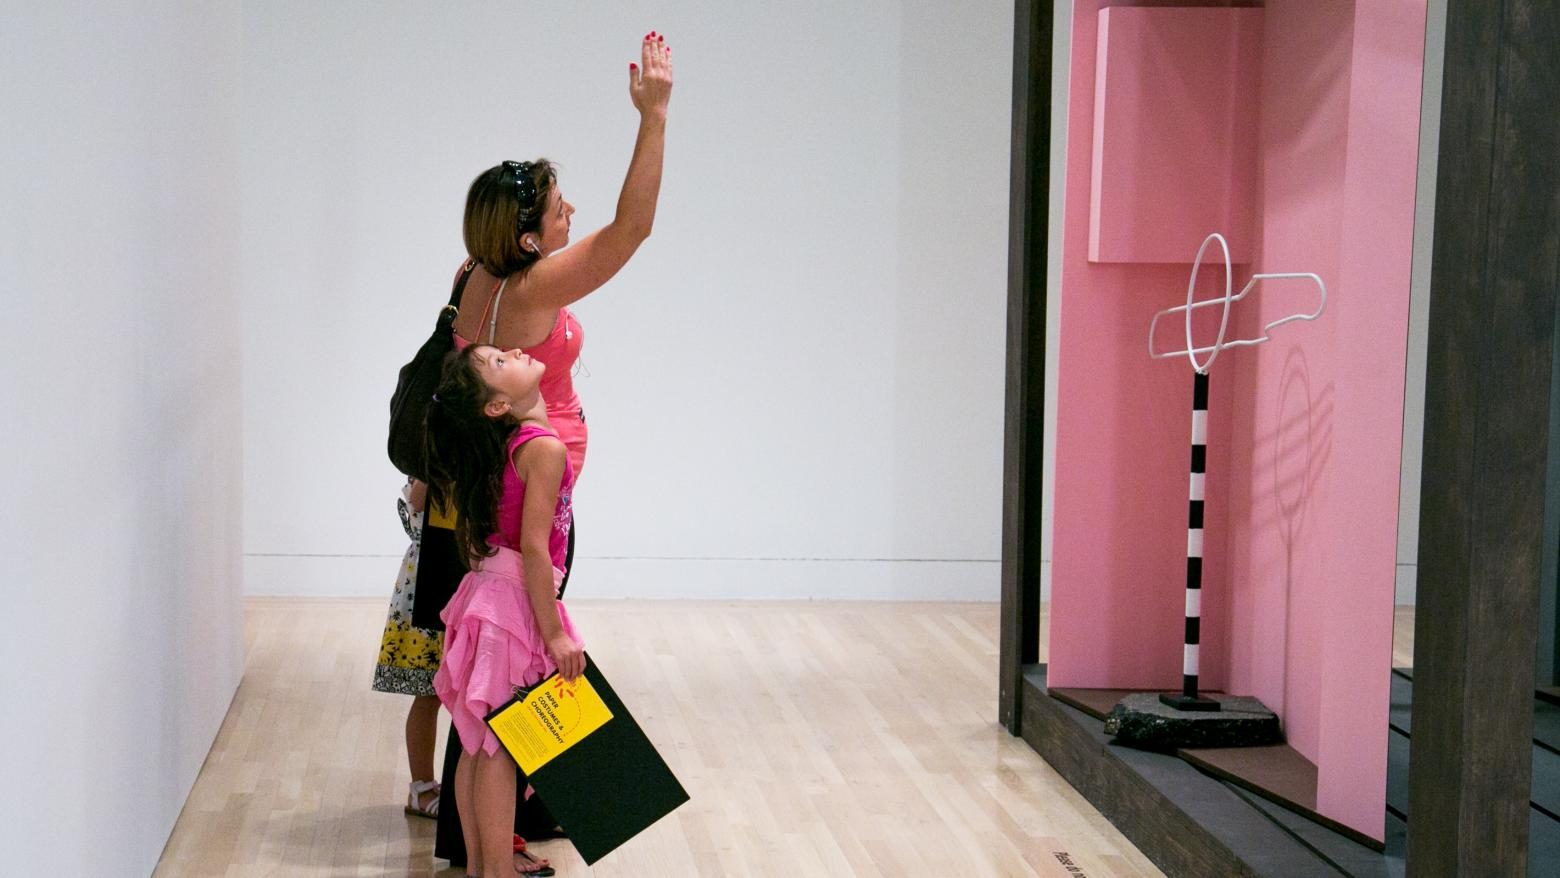 Kid looking at art in the Hammer Museum